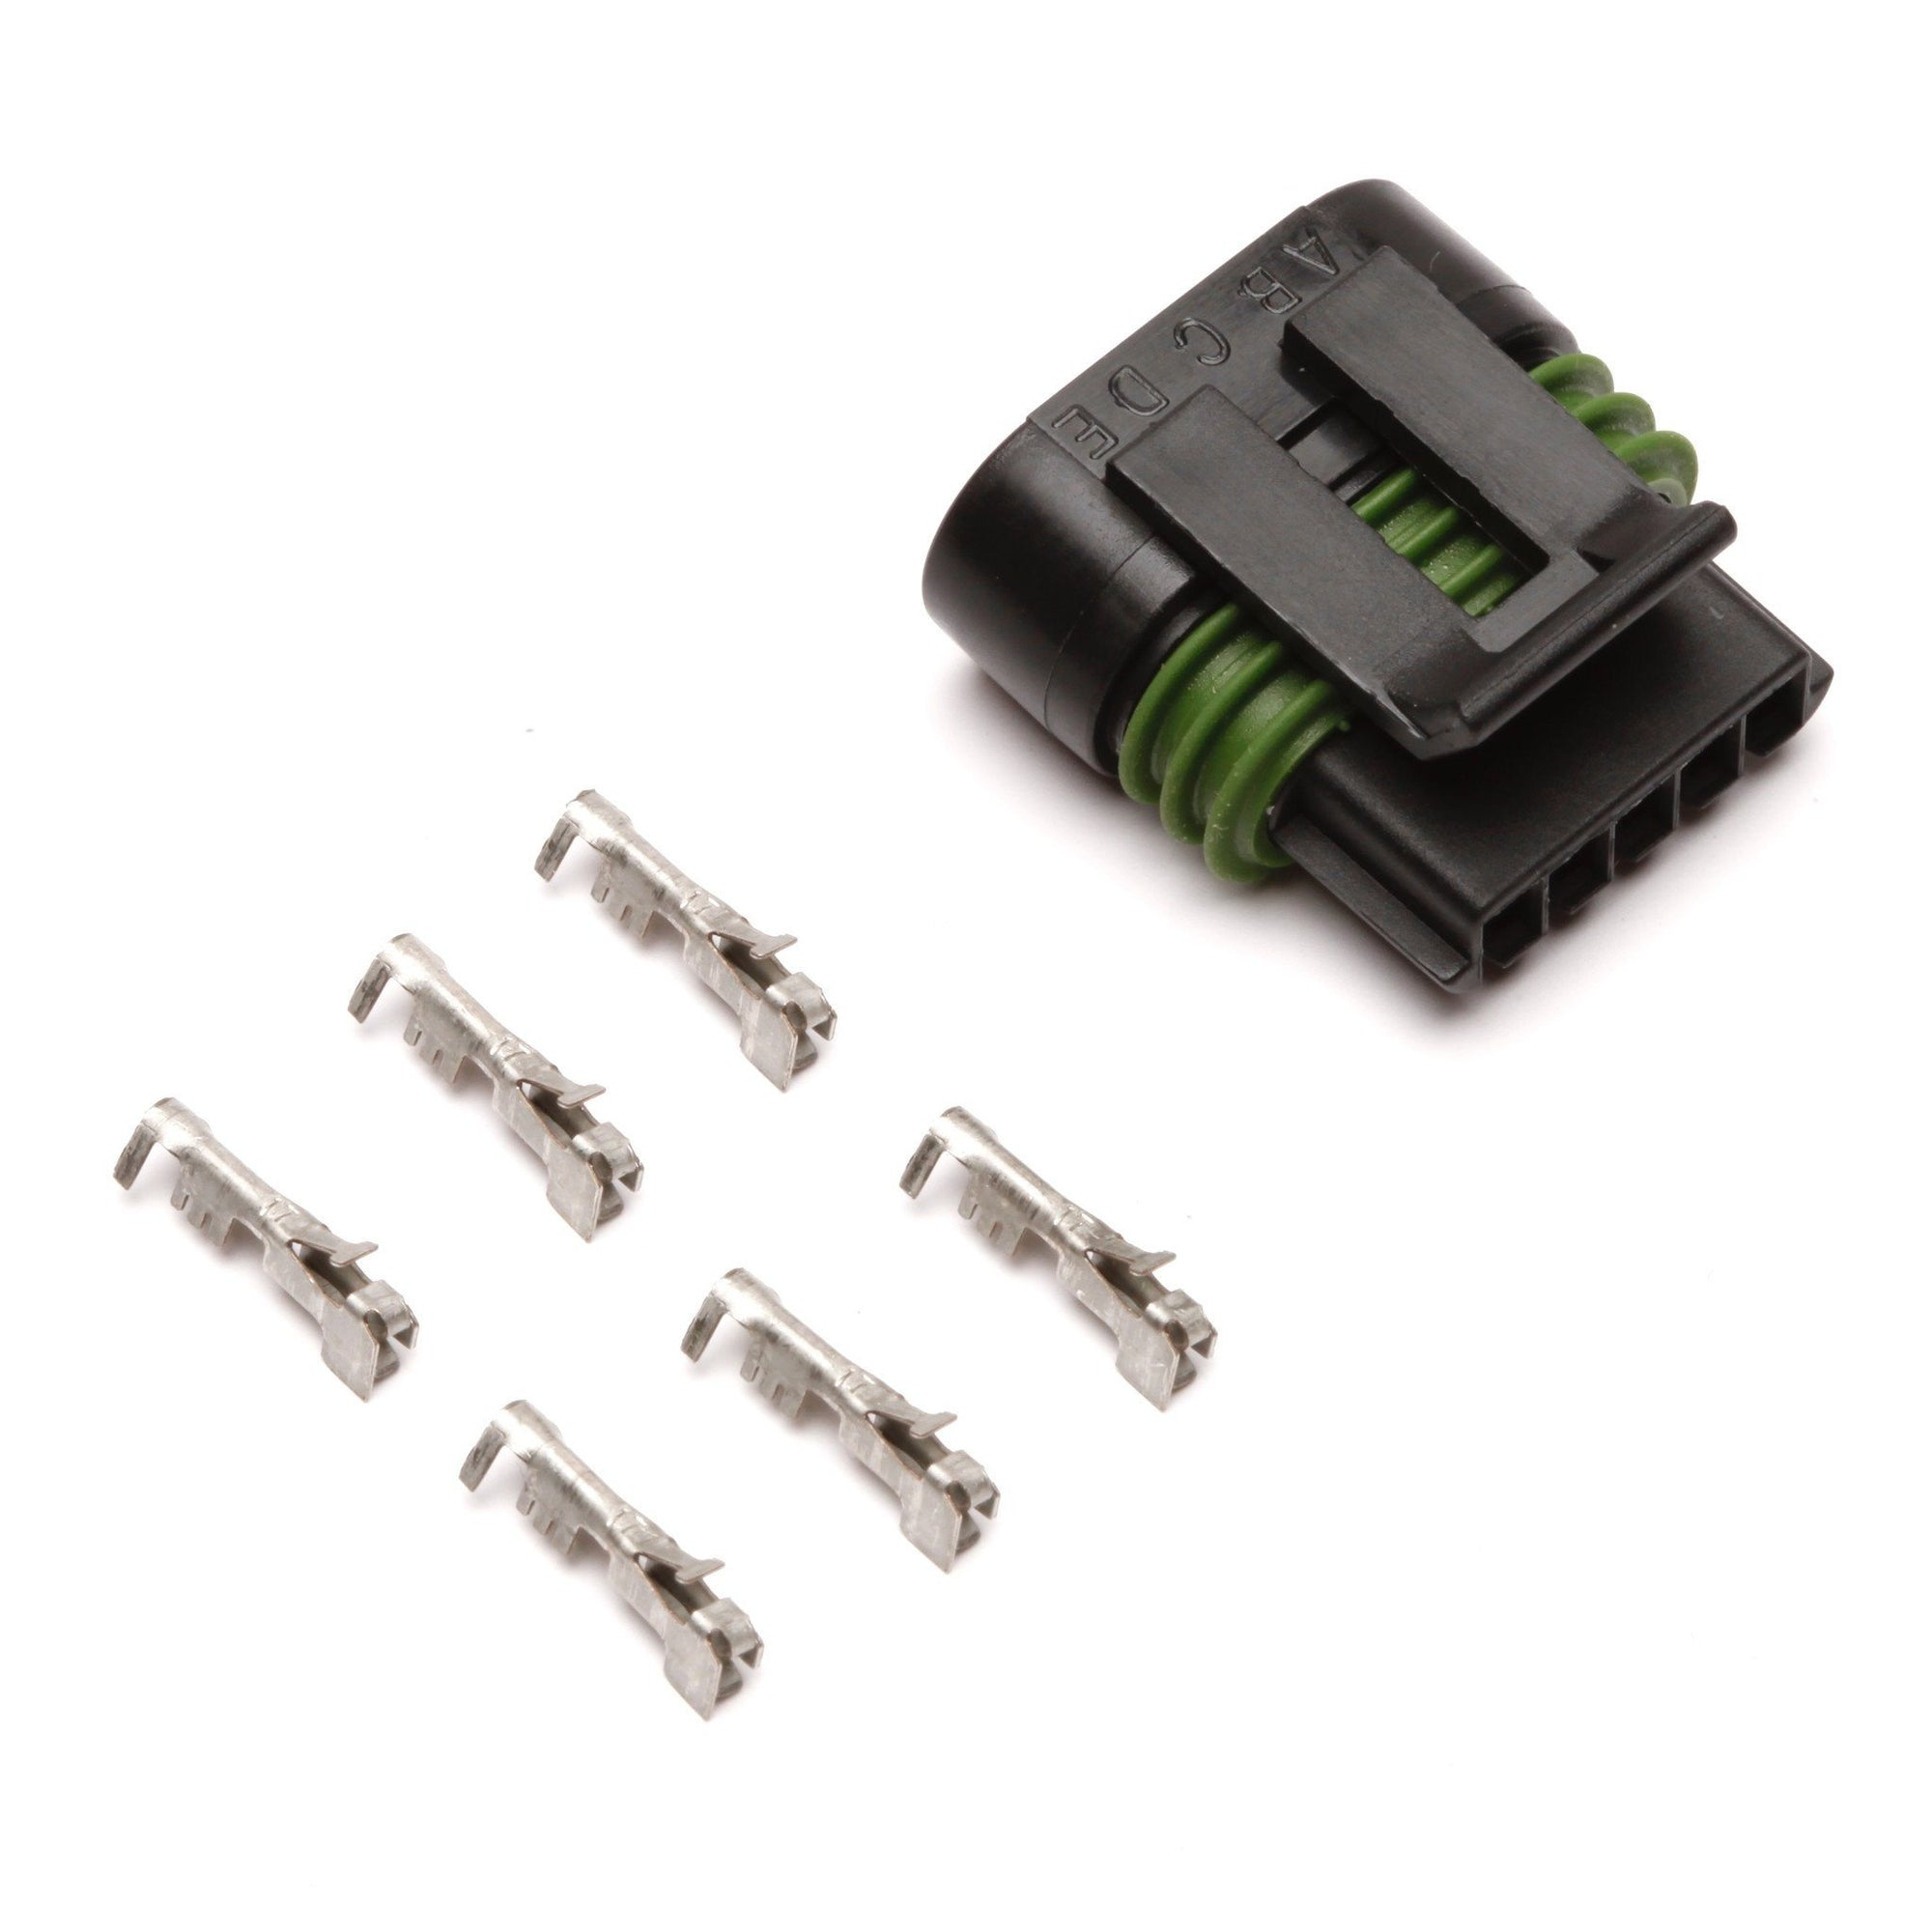 Connectors - IGN1A Coil Connector Kit